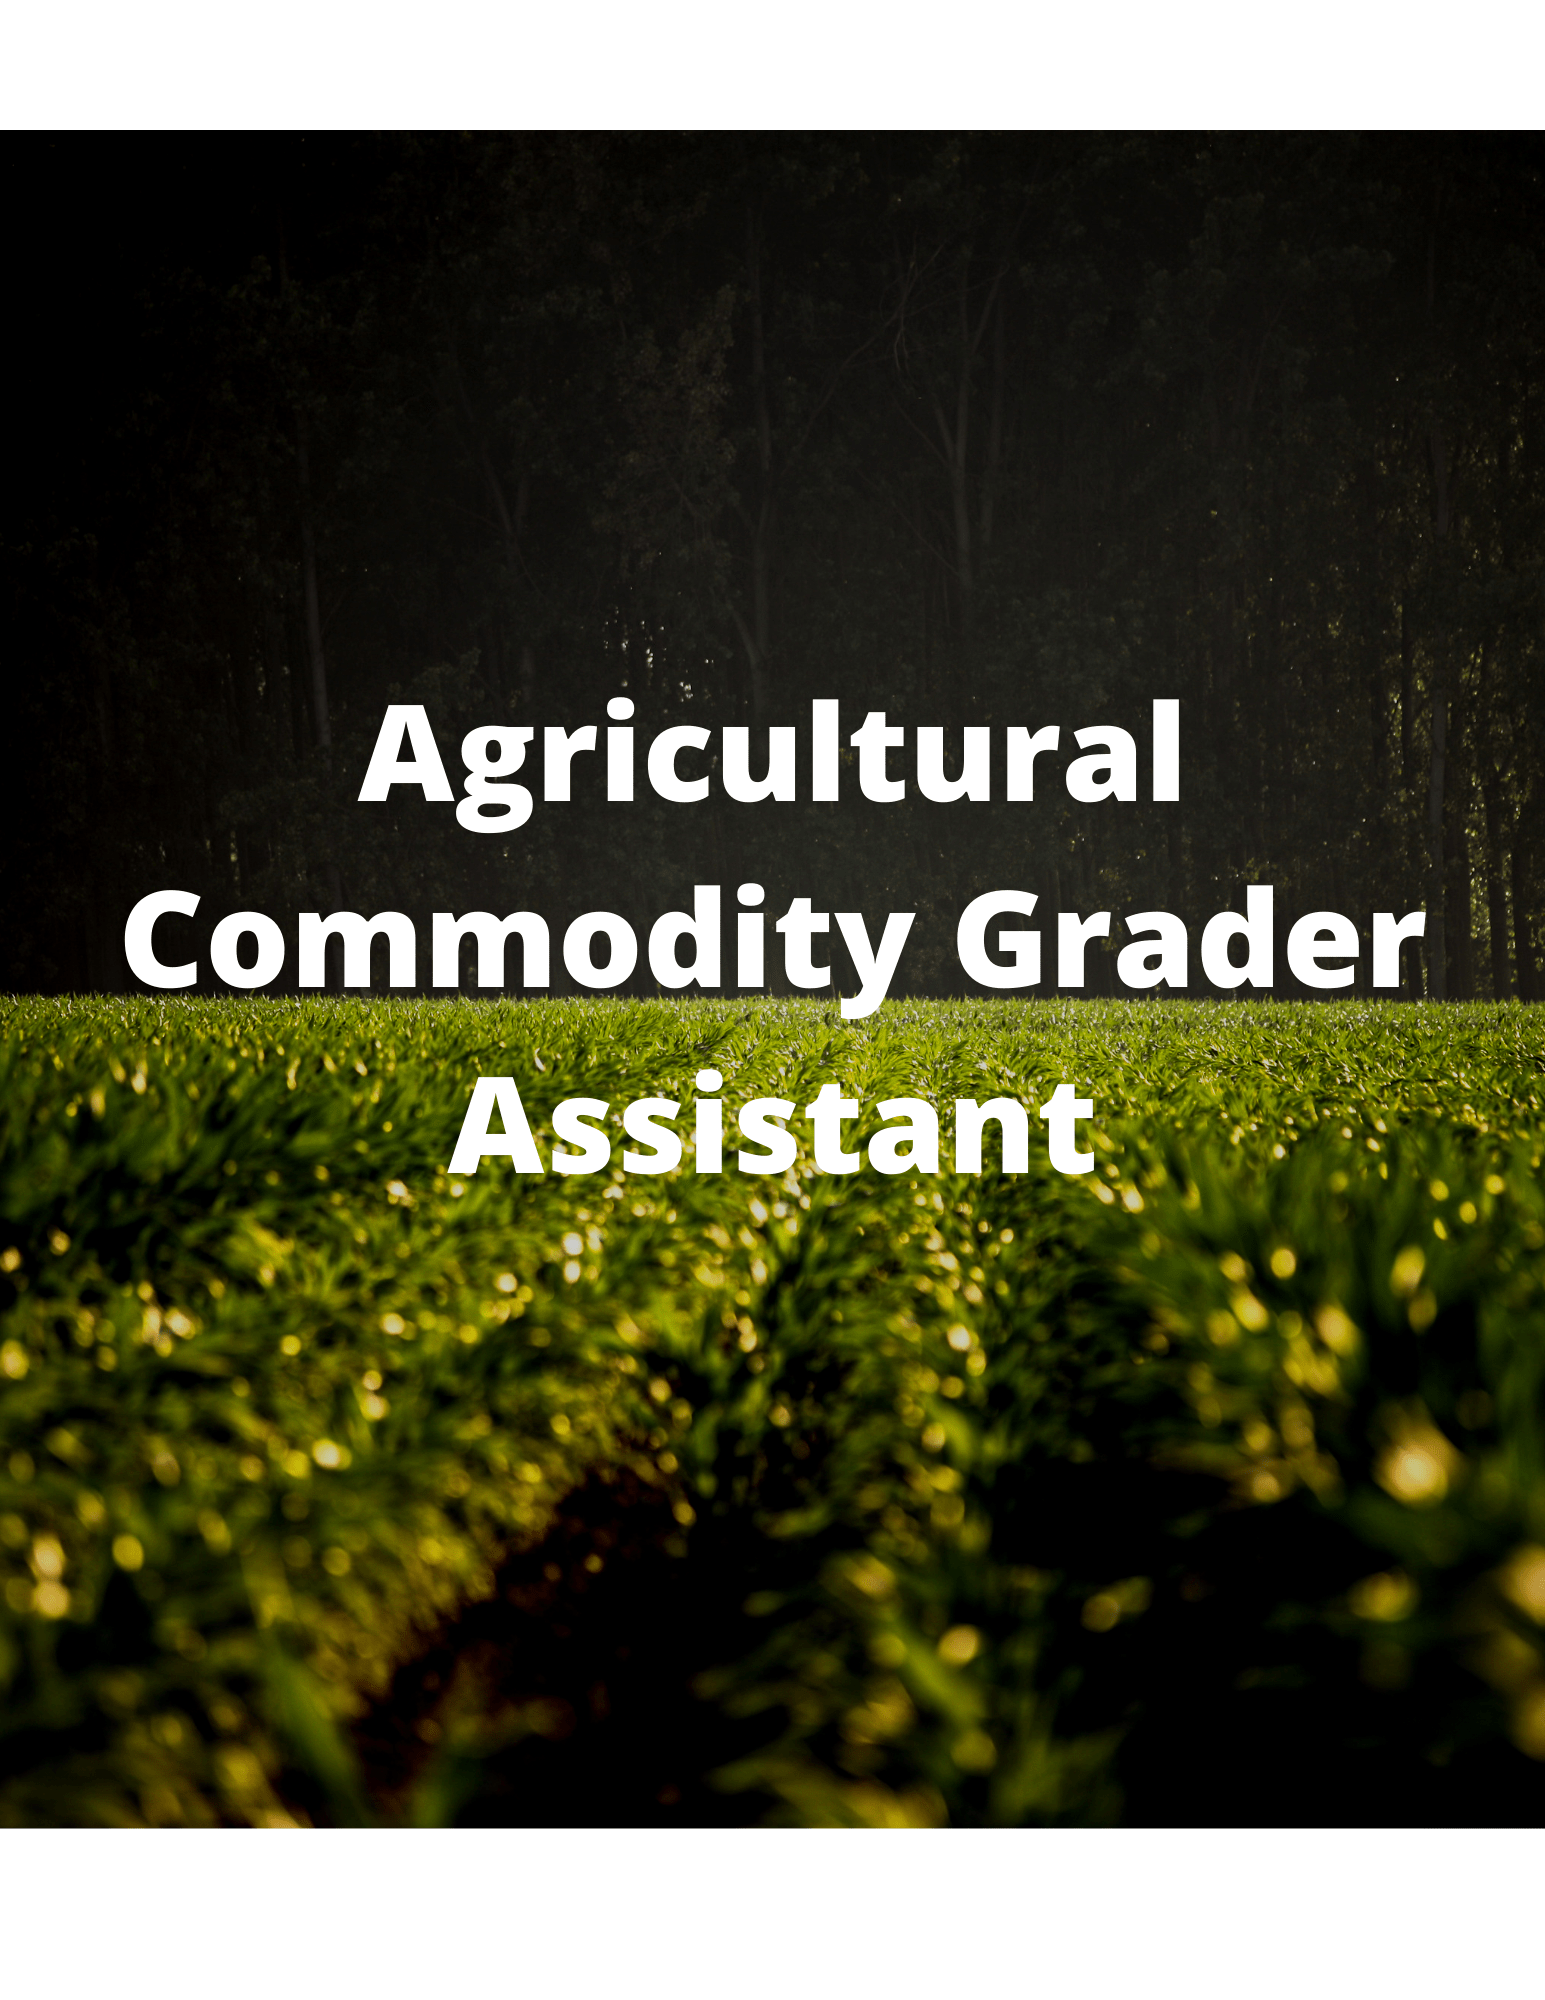 Grader assistant, Commodity Agriculture, ITSQuest, Roswell Jobs